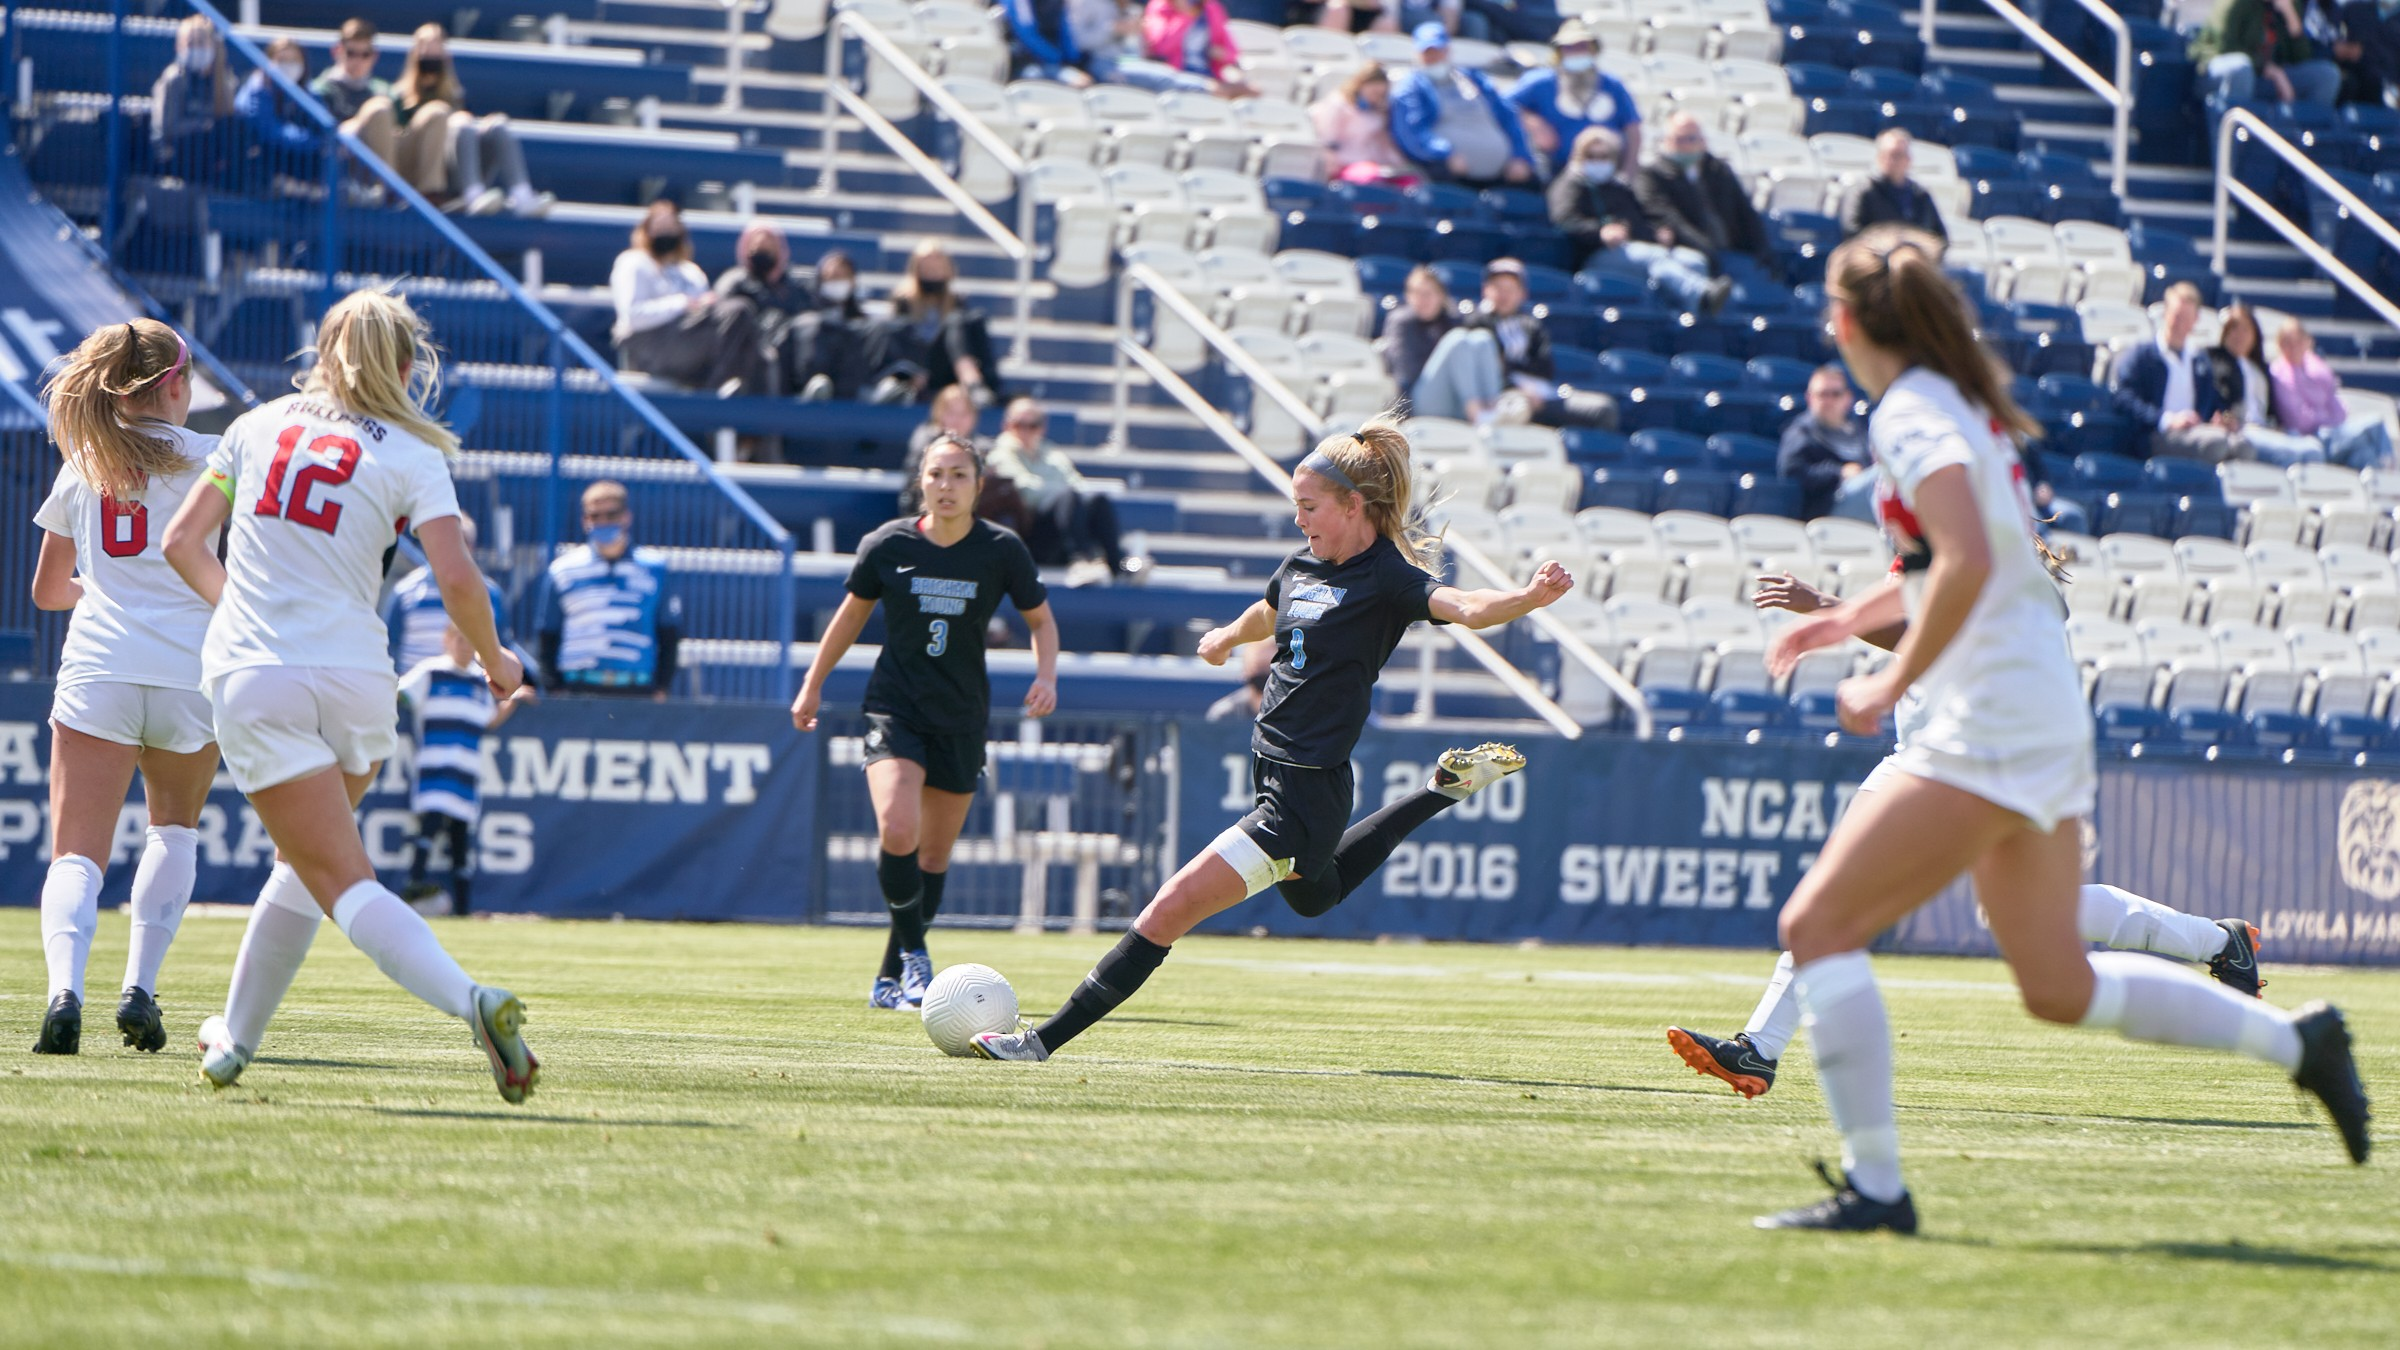 No. 12 BYU women's soccer shut out in NCAA Tournament loss to Virginia